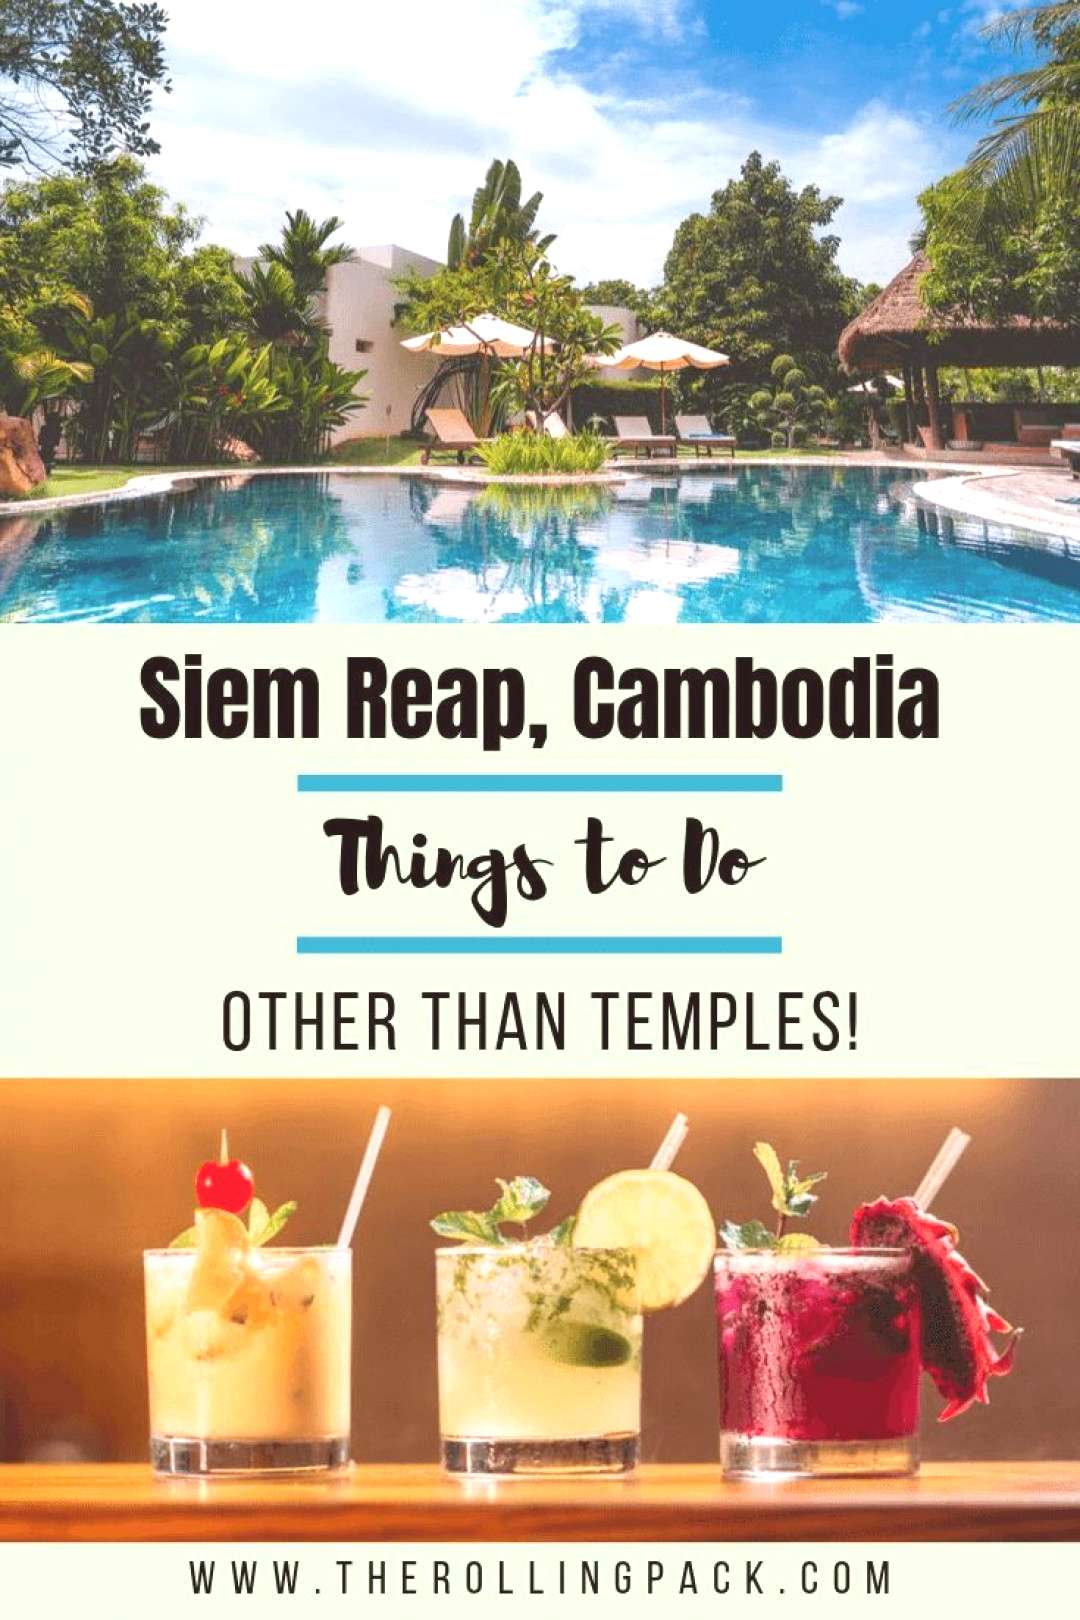 The Best Things to do in Siem Reap (other than temples)! — The Rolling Pack There is a LOT to do